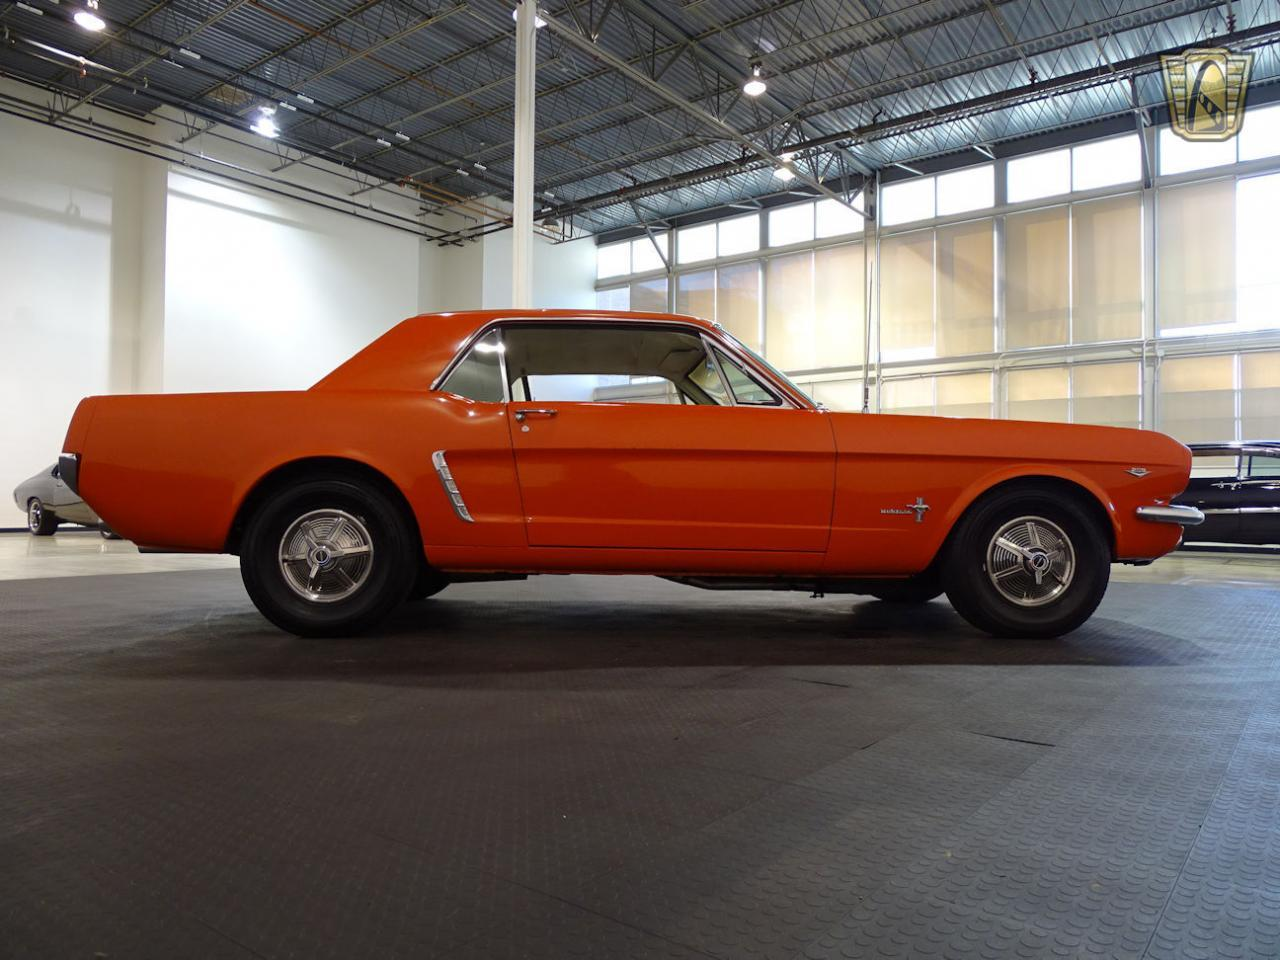 Large Picture of '65 Ford Mustang - $20,995.00 Offered by Gateway Classic Cars - Indianapolis - MB4P